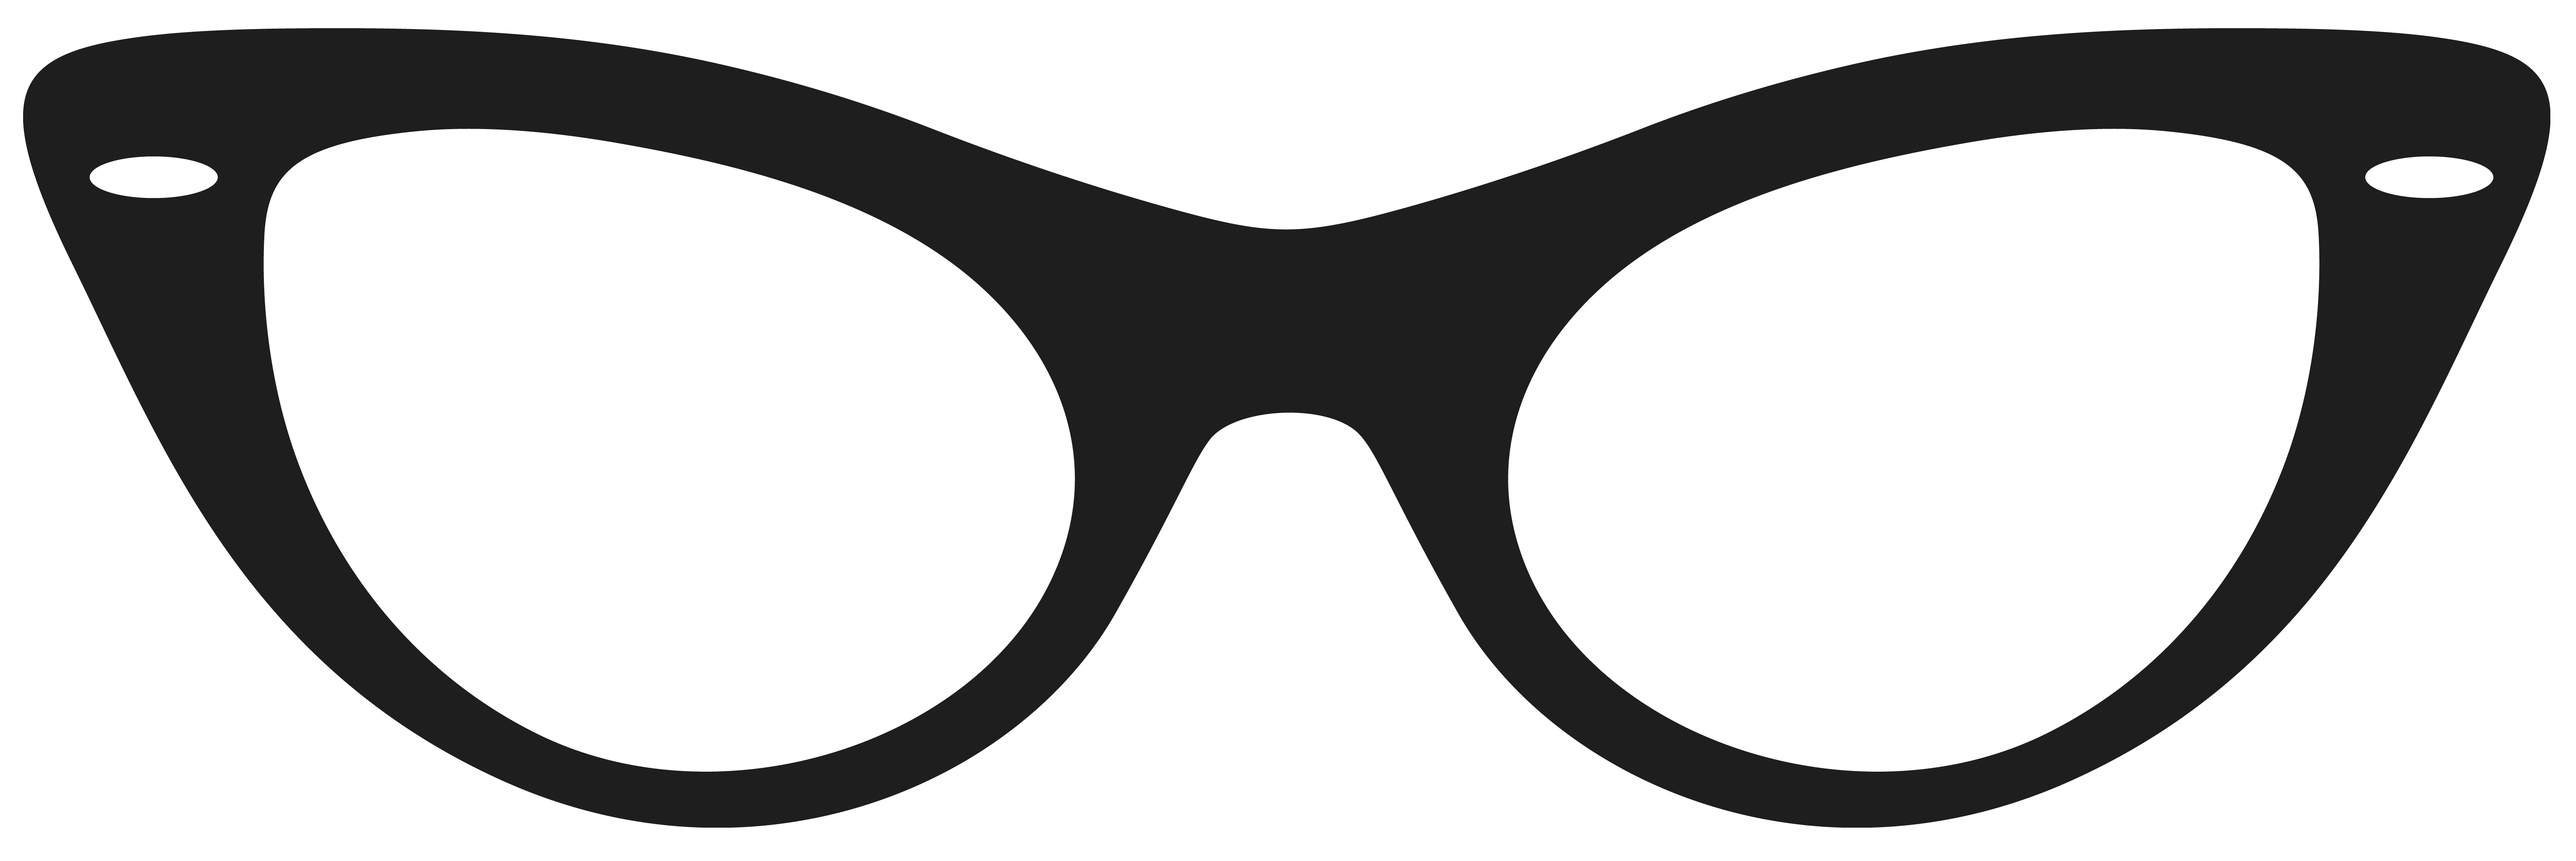 The glasses clipart 20 free Cliparts.